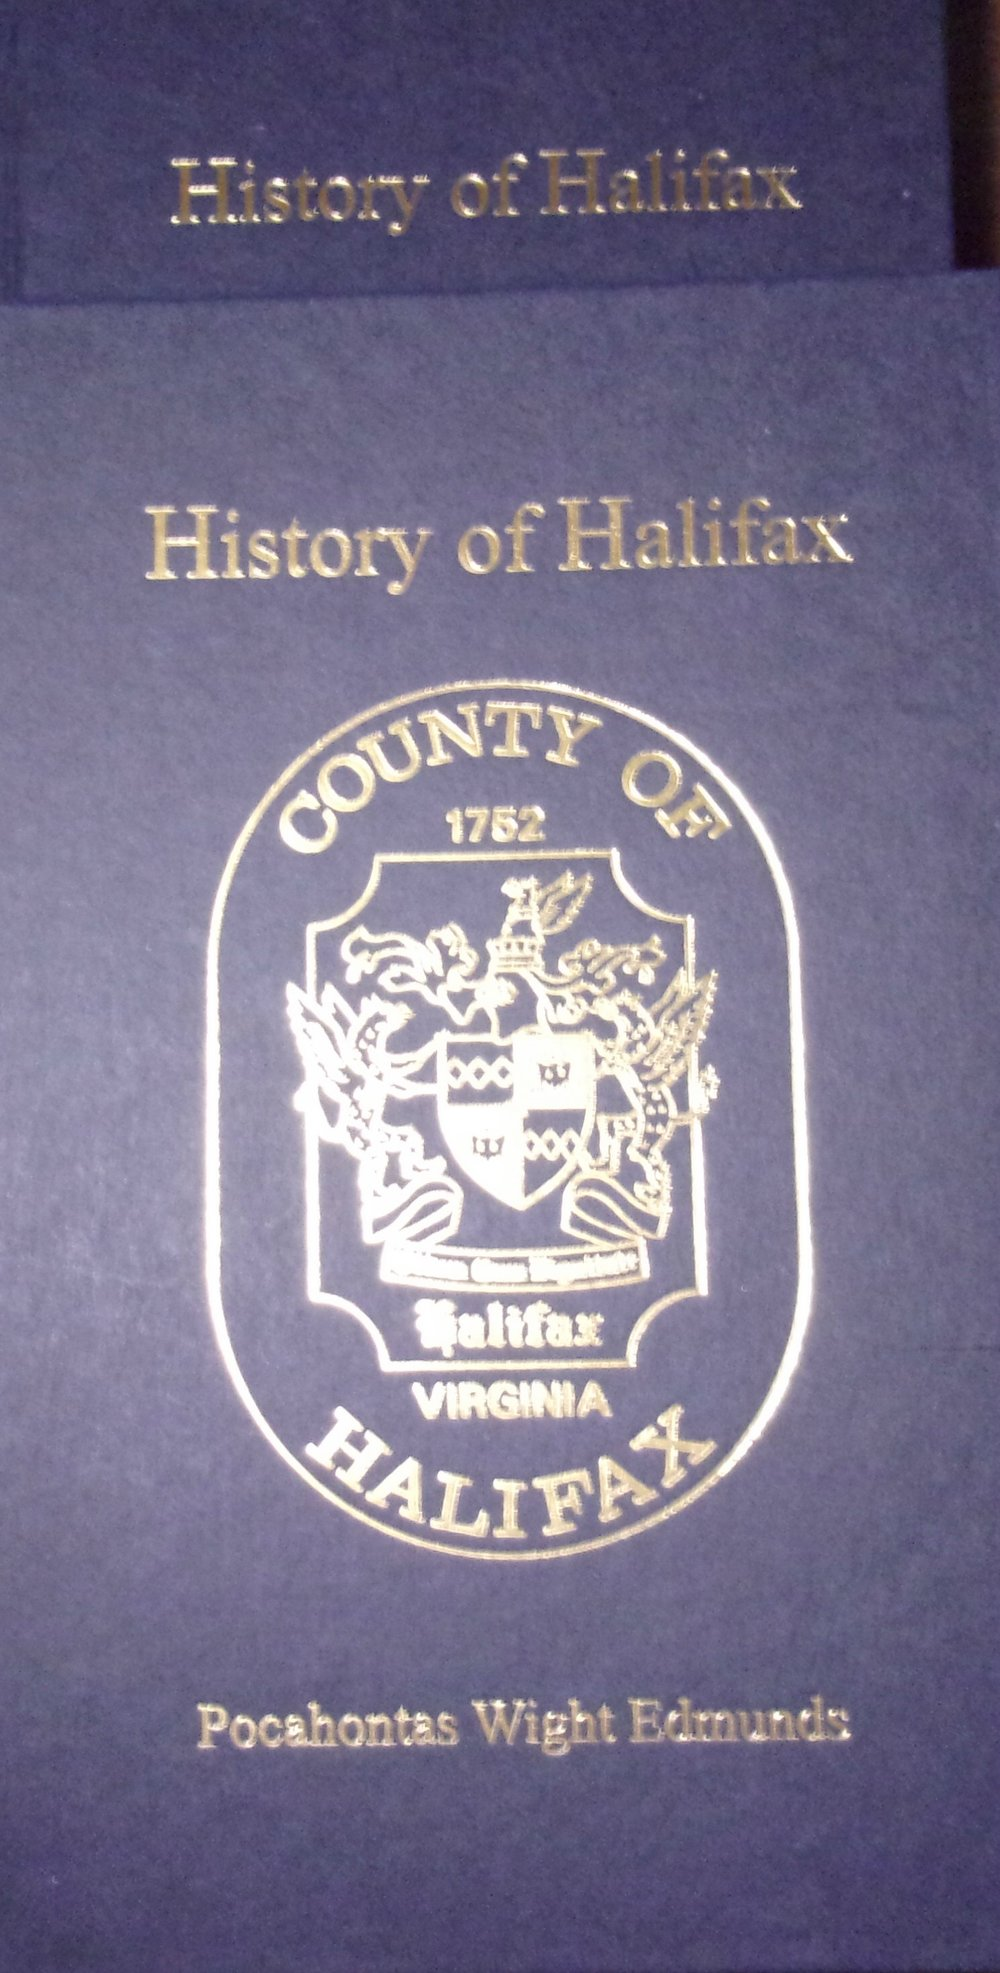 History of Halifax (2 Volume Set).jpg